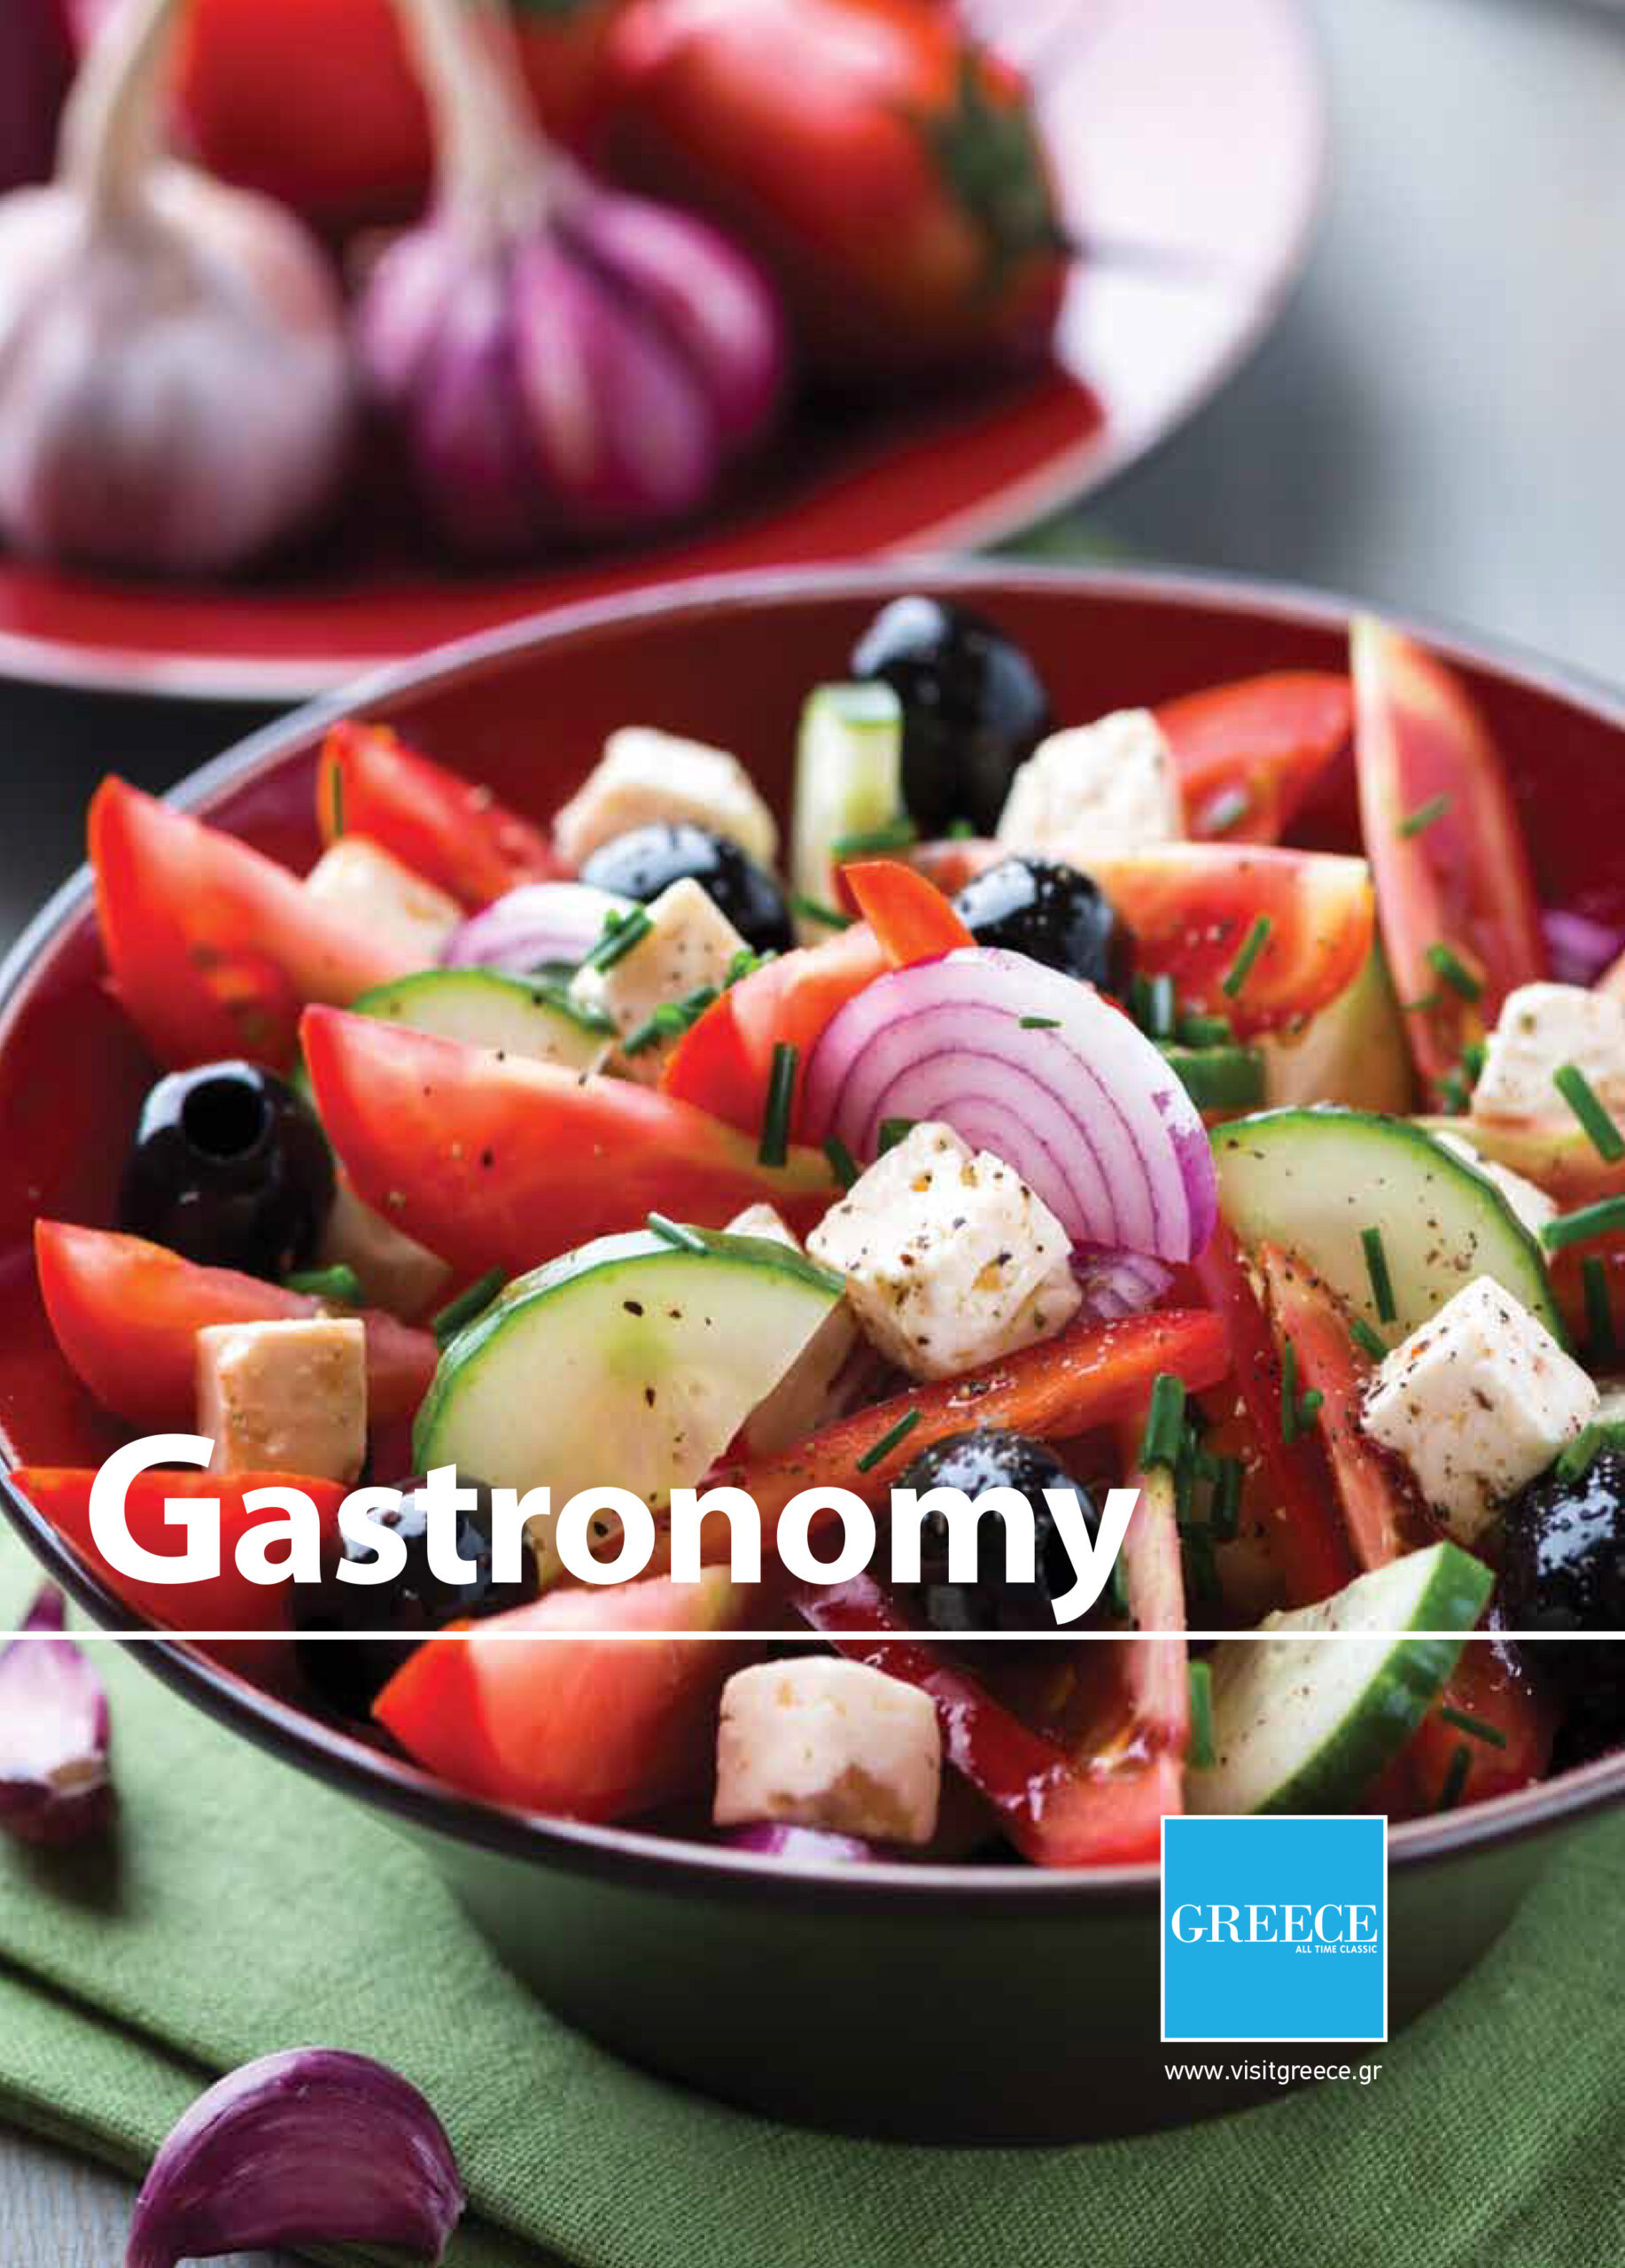 E-book travel guide - Greek gastronomy